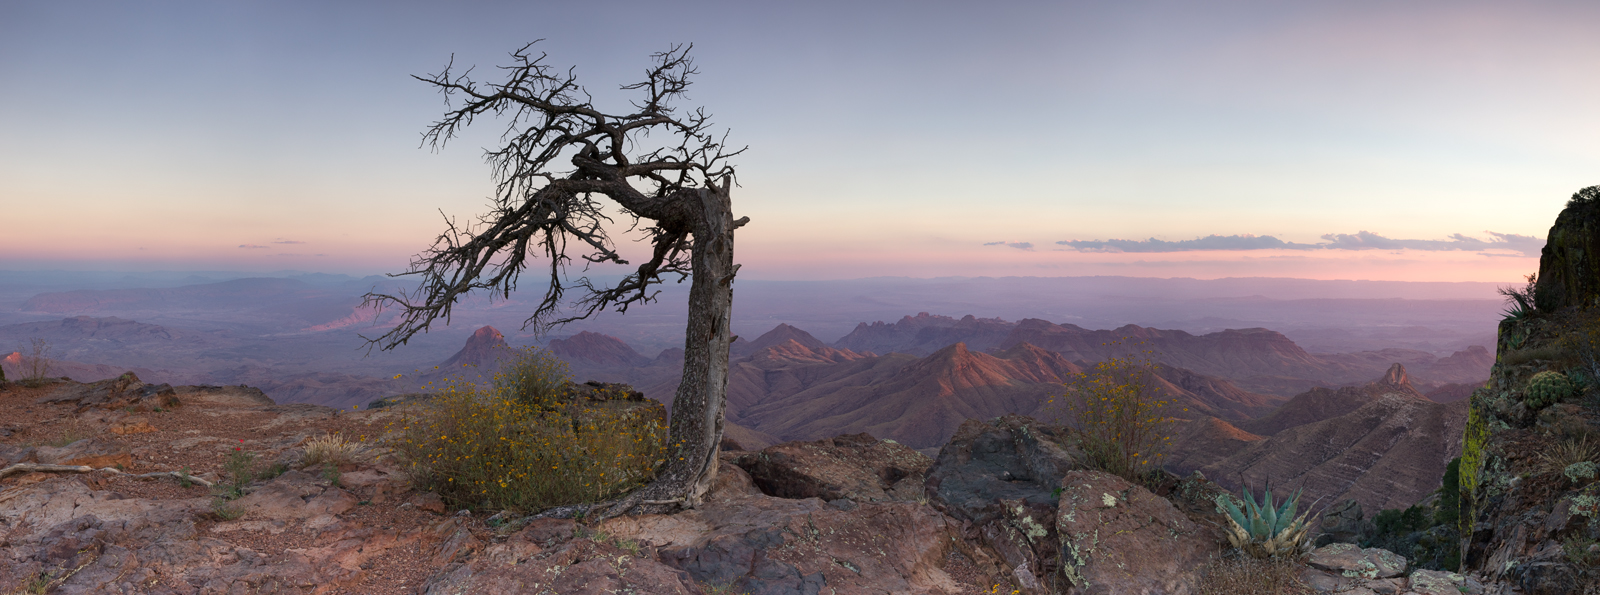 Panoramic, landscape, photography, sunset, Chisos, Big Bend, Texas, lone tree, panoramique, paysage, coucher de soleil